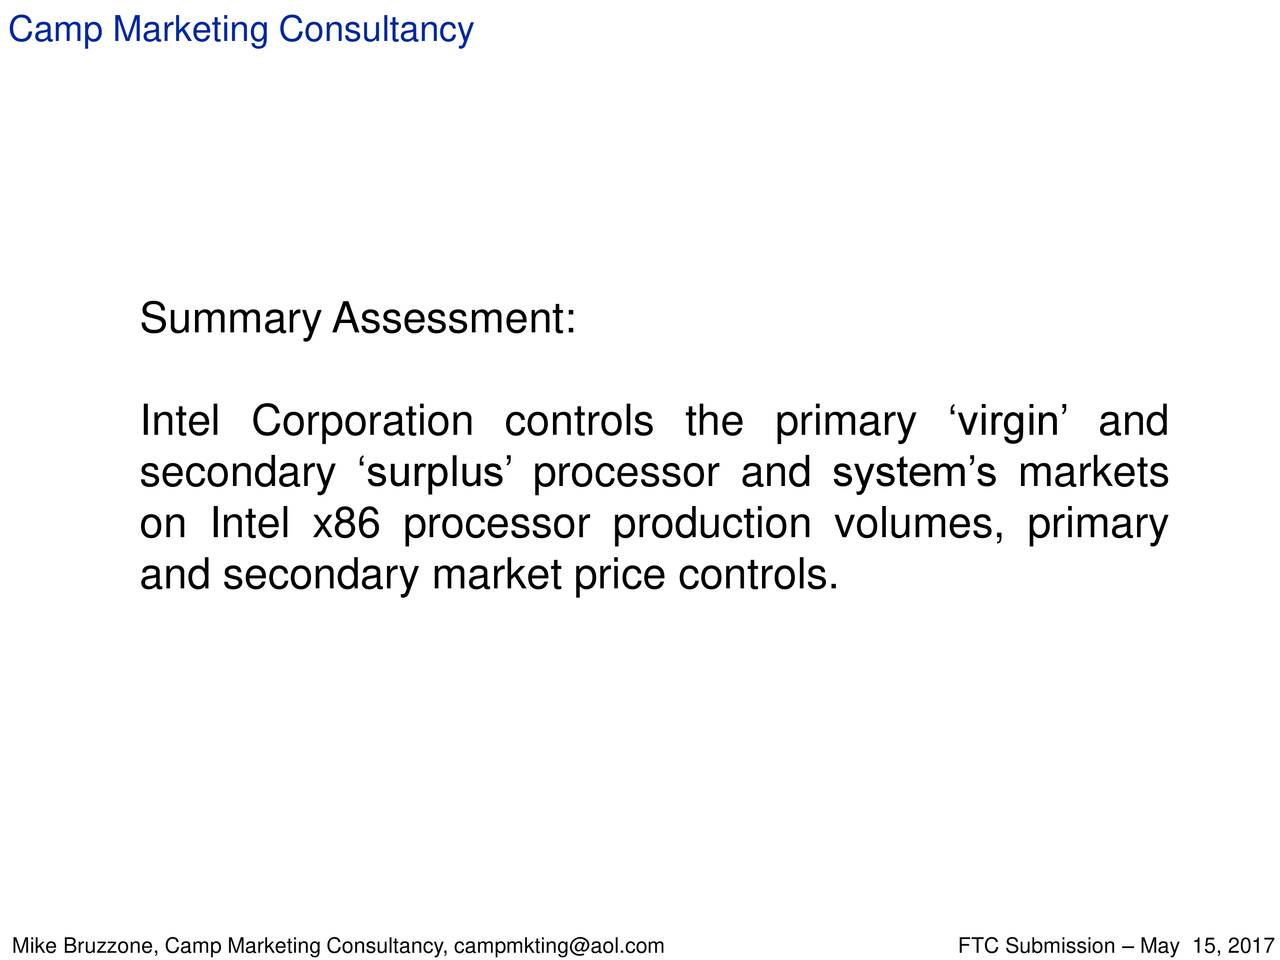 Summary Assessment: Intel Corporation controls the primary 'virgin' and secondary 'surplus' processor and system's markets on Intel x86 processor production volumes, primary and secondary market price controls.